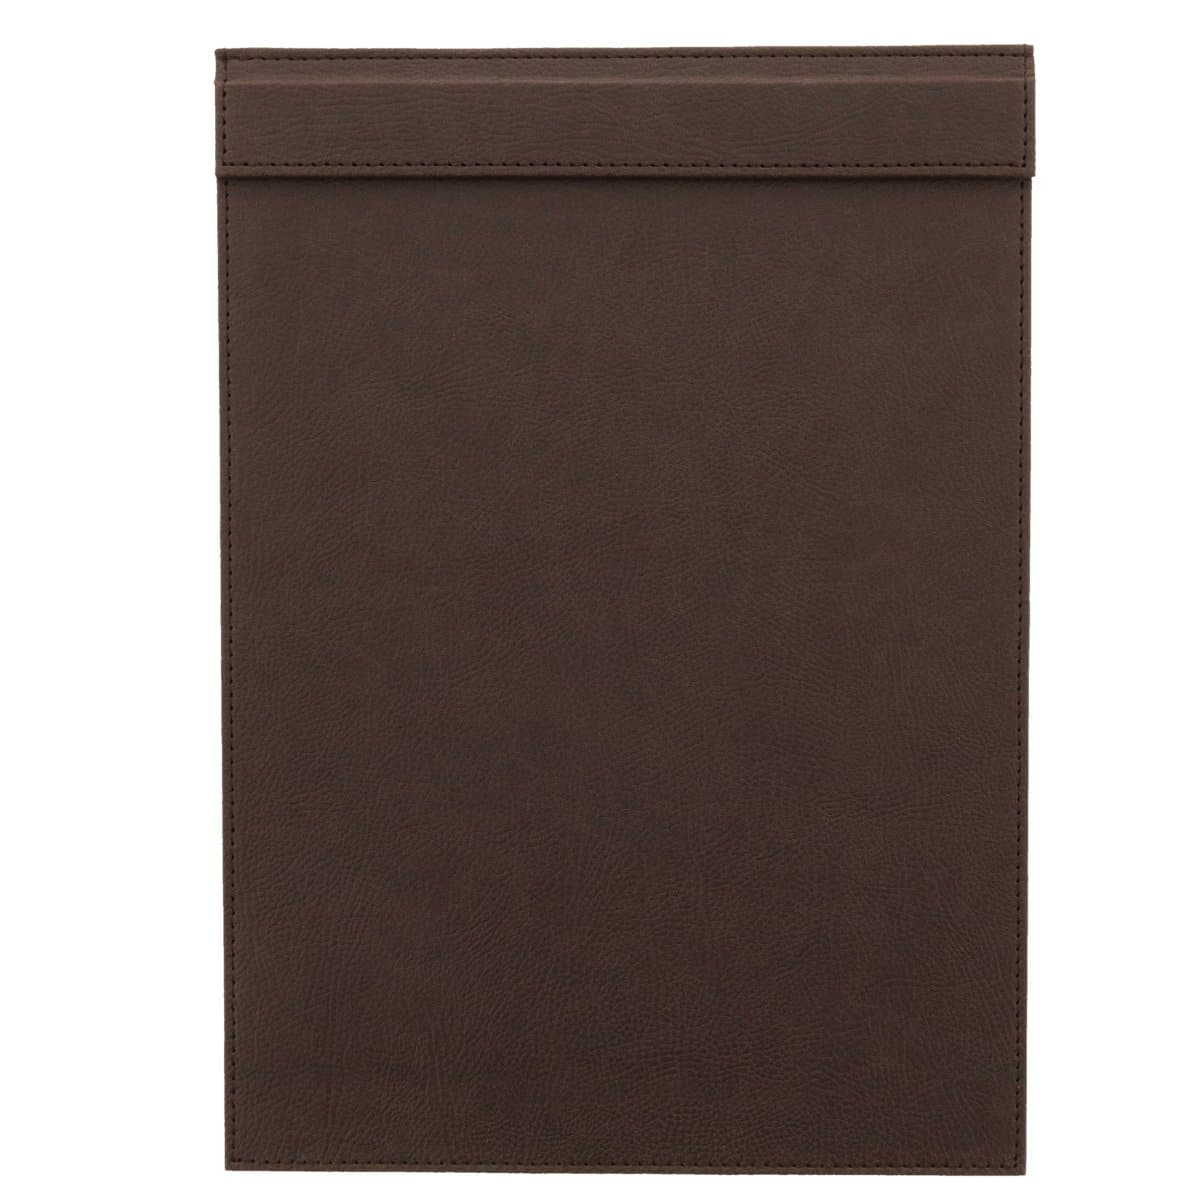 Konrad S. Clip Board with Magnetic Flap A4, PU Leather, Brown